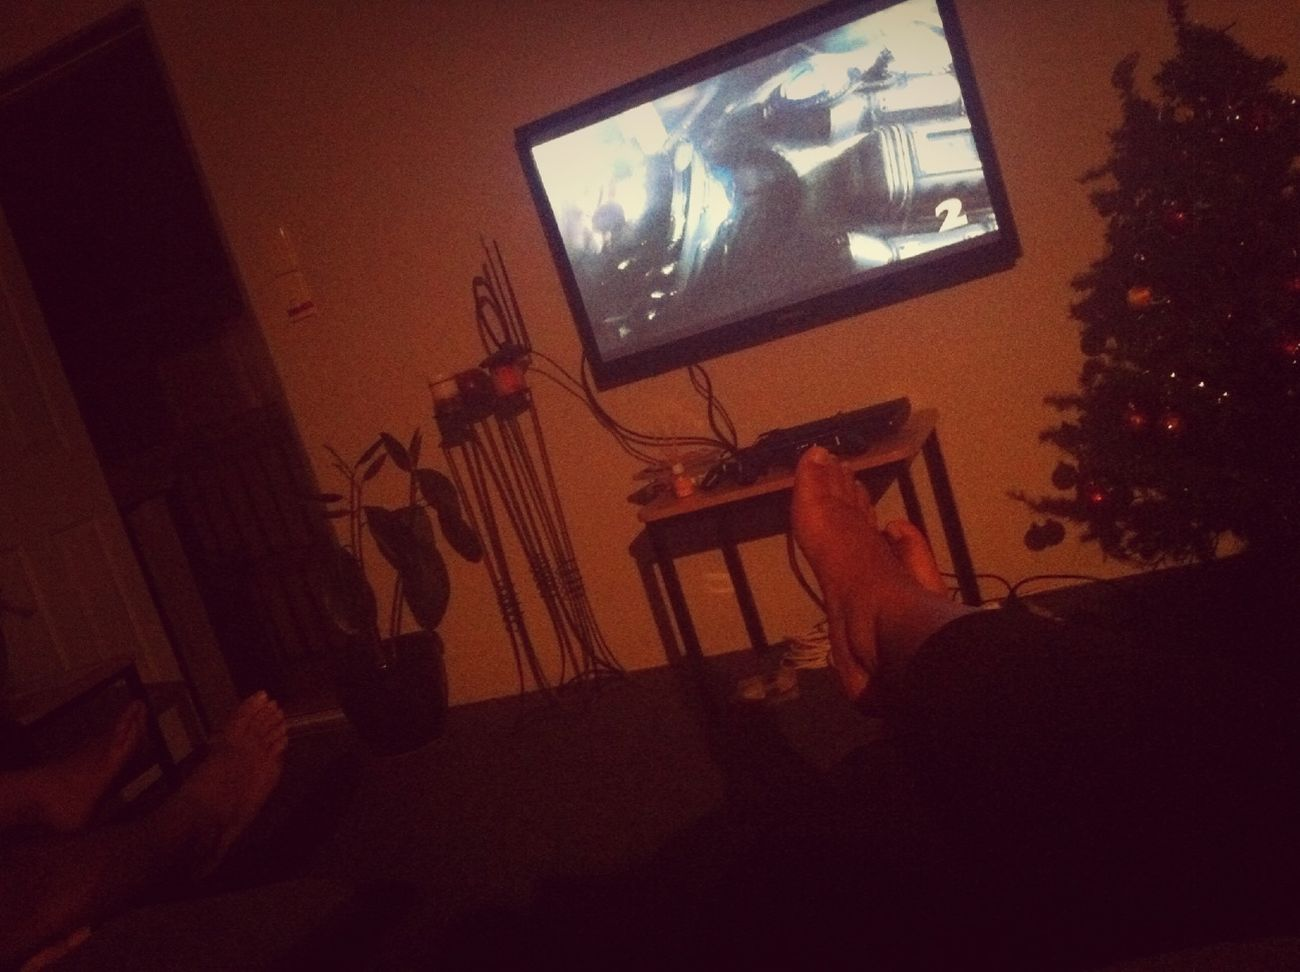 A family that watch movies together..stay together #truth #realtalk